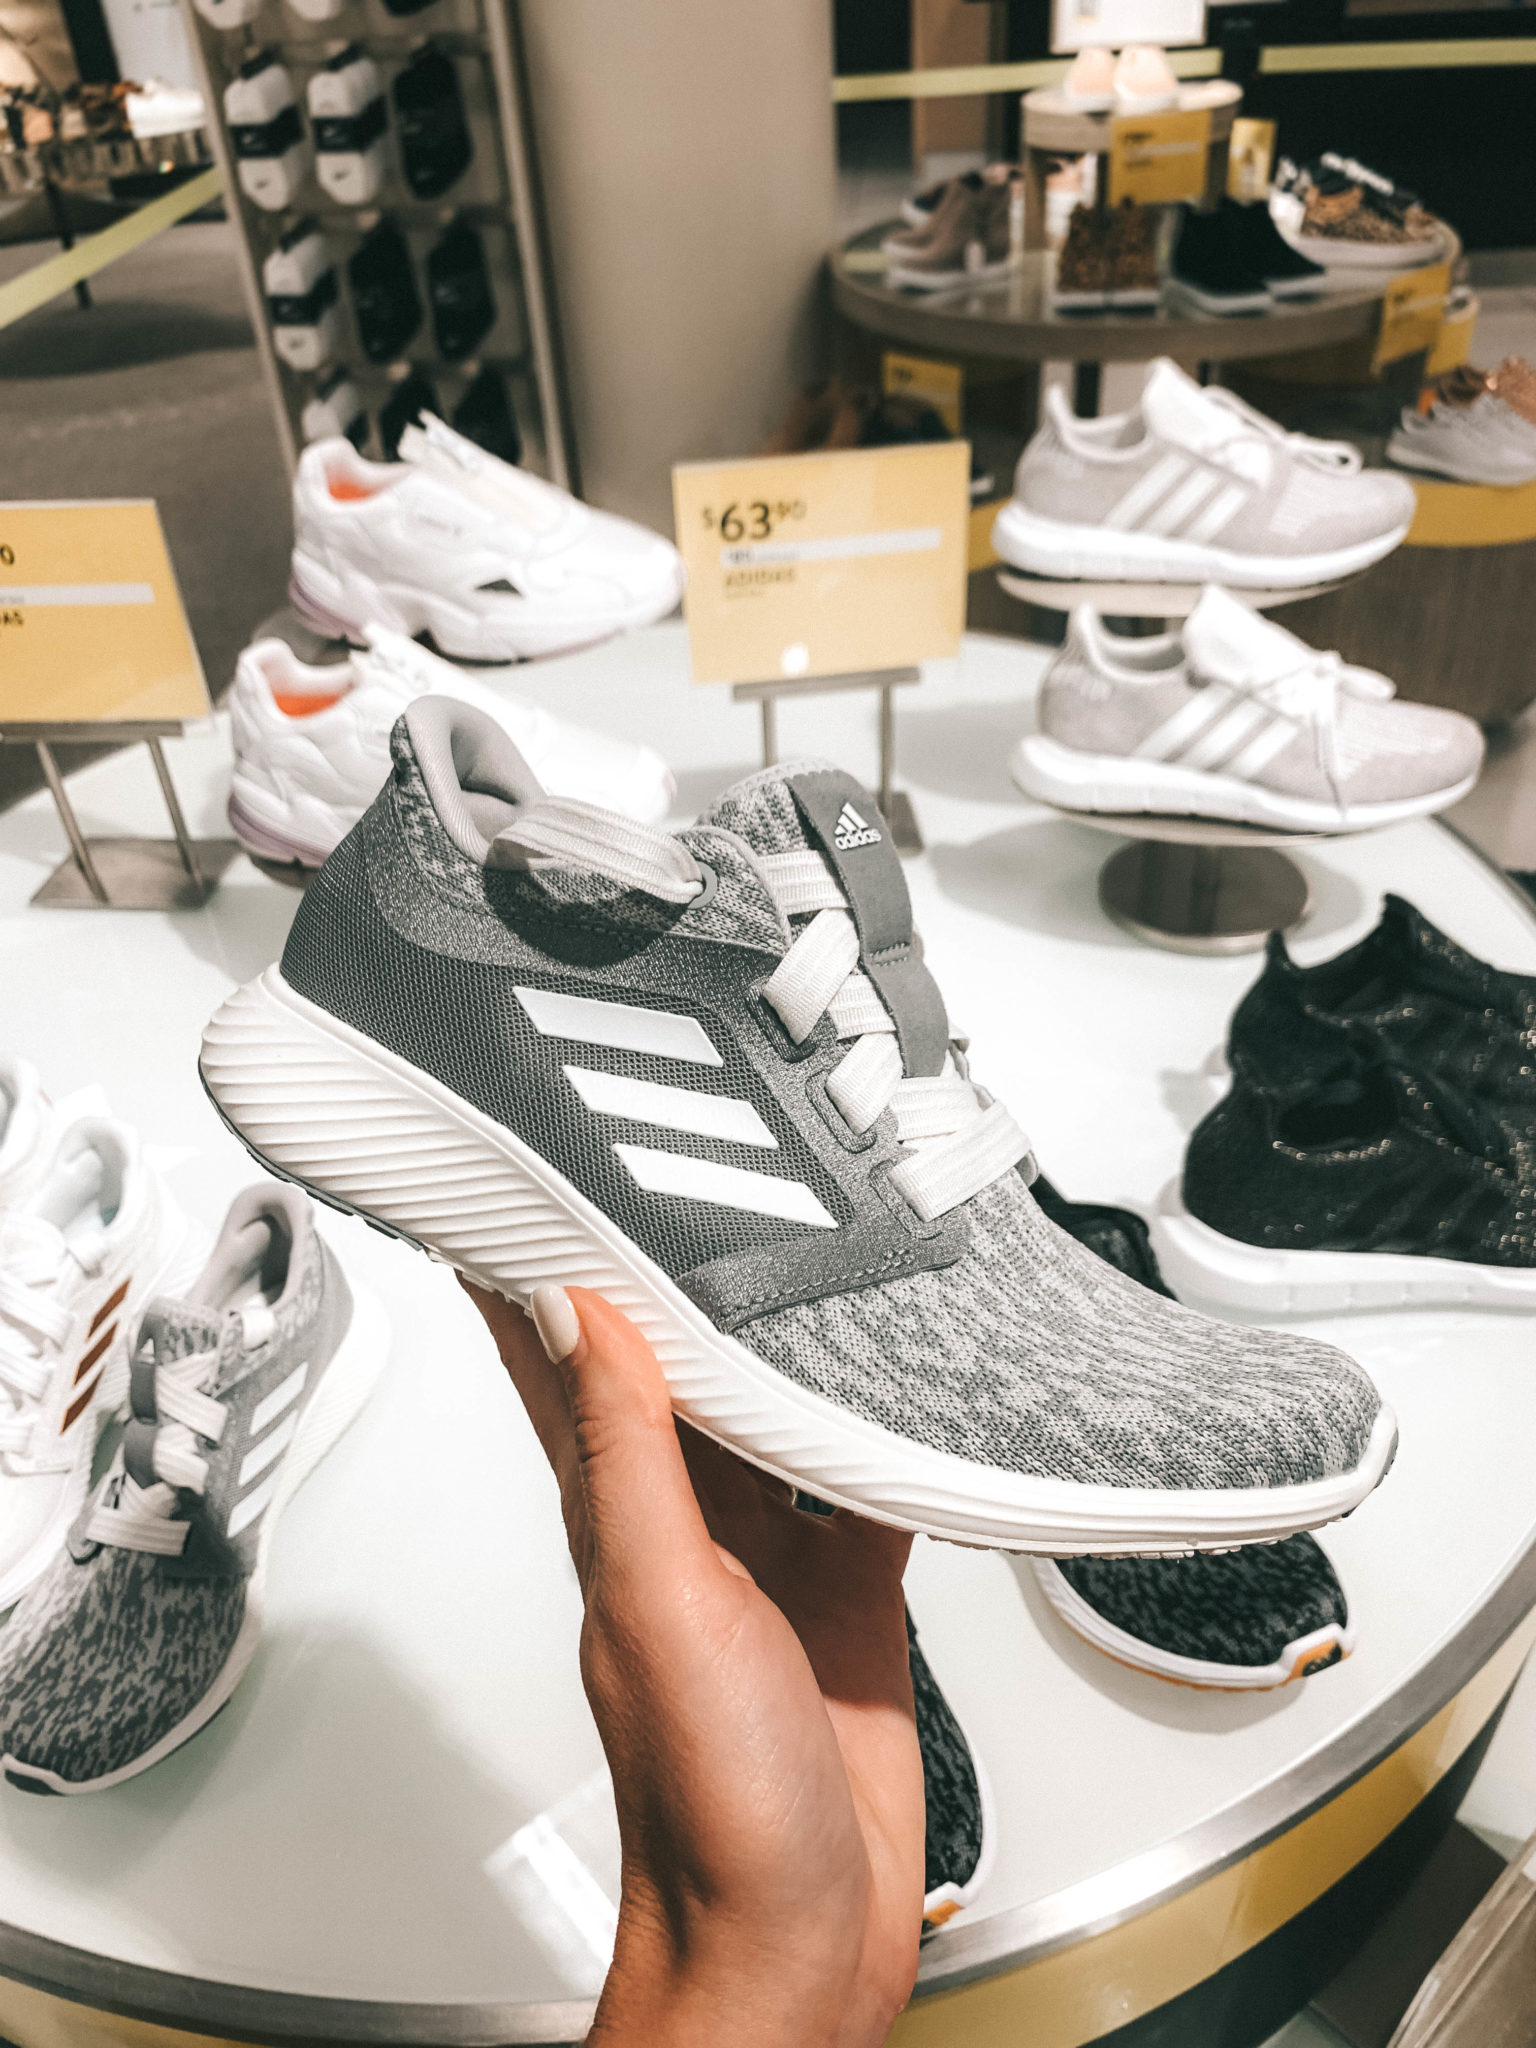 Top 11 Must Have Pieces from the Nordstrom Anniversary Sale by popular Austin fashion blog, Dressed to Kill: image of a woman holding a grey Edge Lux 3 Running Shoe by ADIDAS